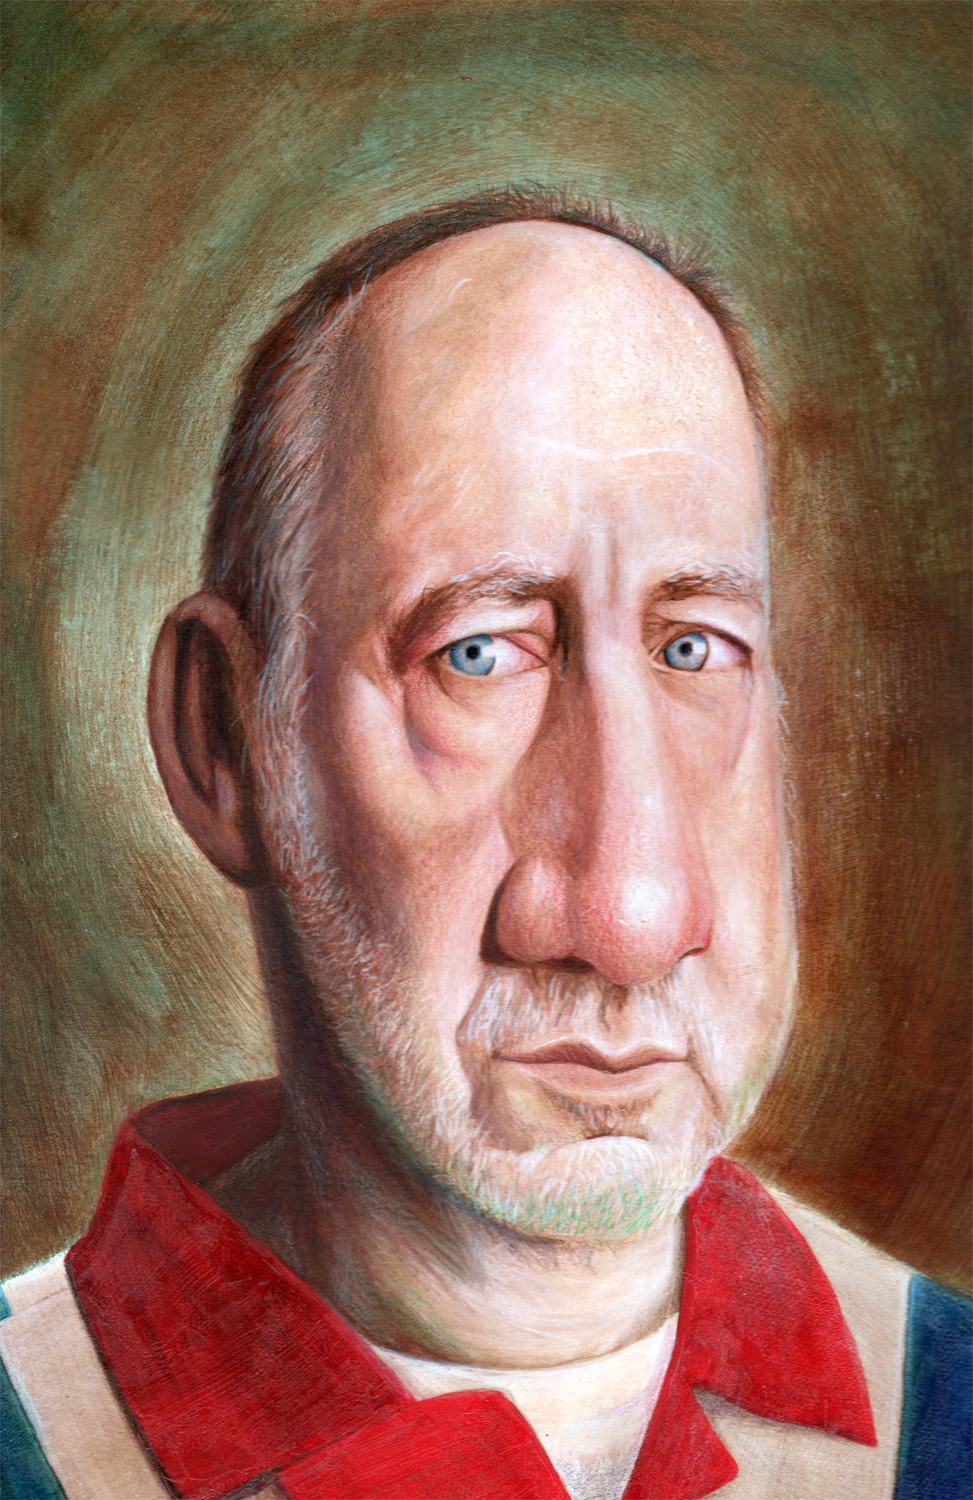 Pete Townshend of 'The Who'.  Behind Blue Eyes. Mixed Media ©Brian DeYoung Illustration